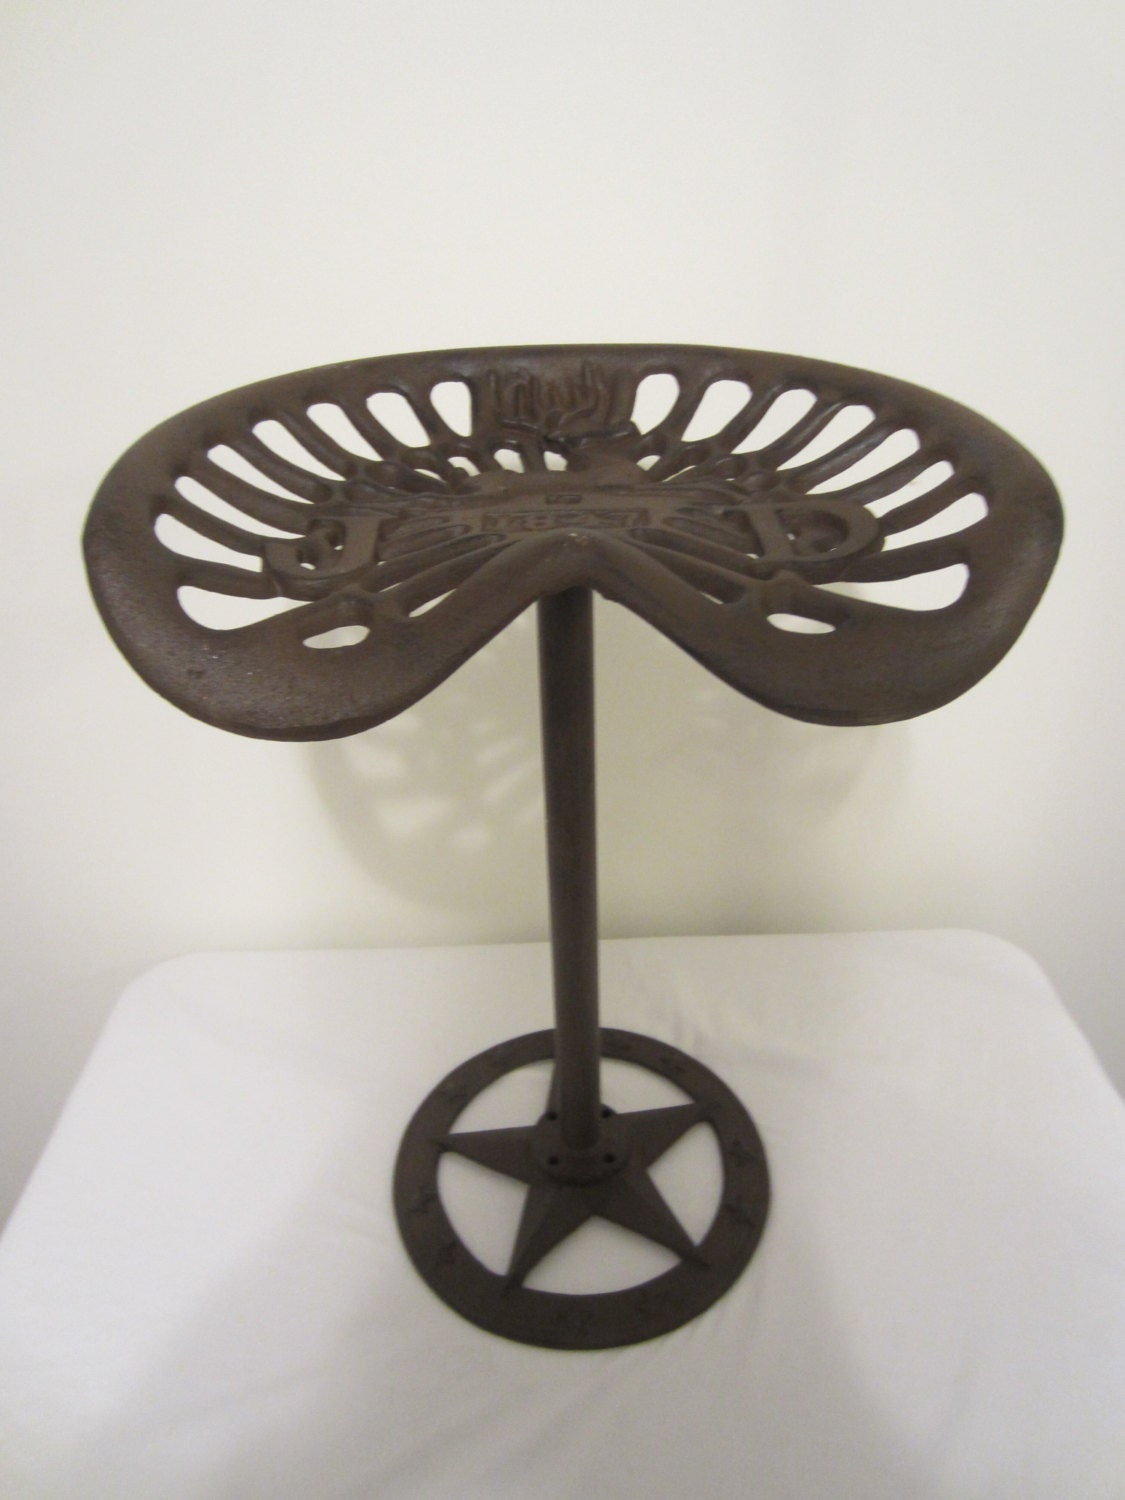 Cast Iron Tractor Seat Stool : Tractor bar stool vintage cast iron saddle farm rustic seat